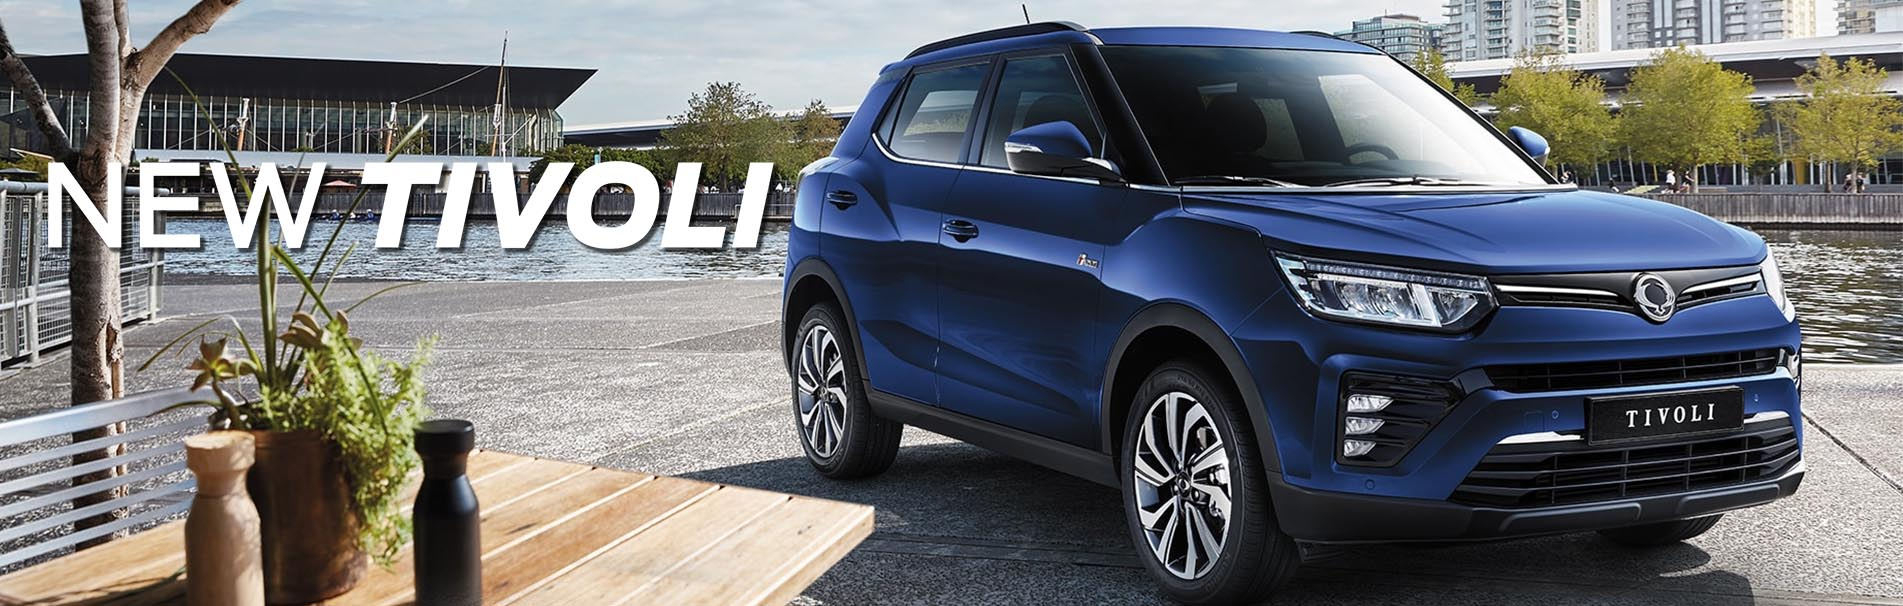 whats-new-about-new-ssangyong-tivoli-sli